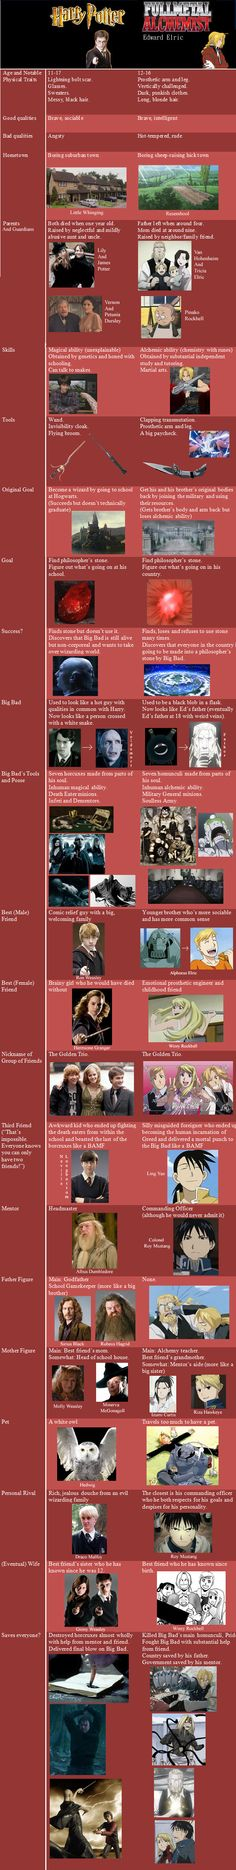 Comparing harry potter and edward elric. CONTAINS HUGE SPOILERS!